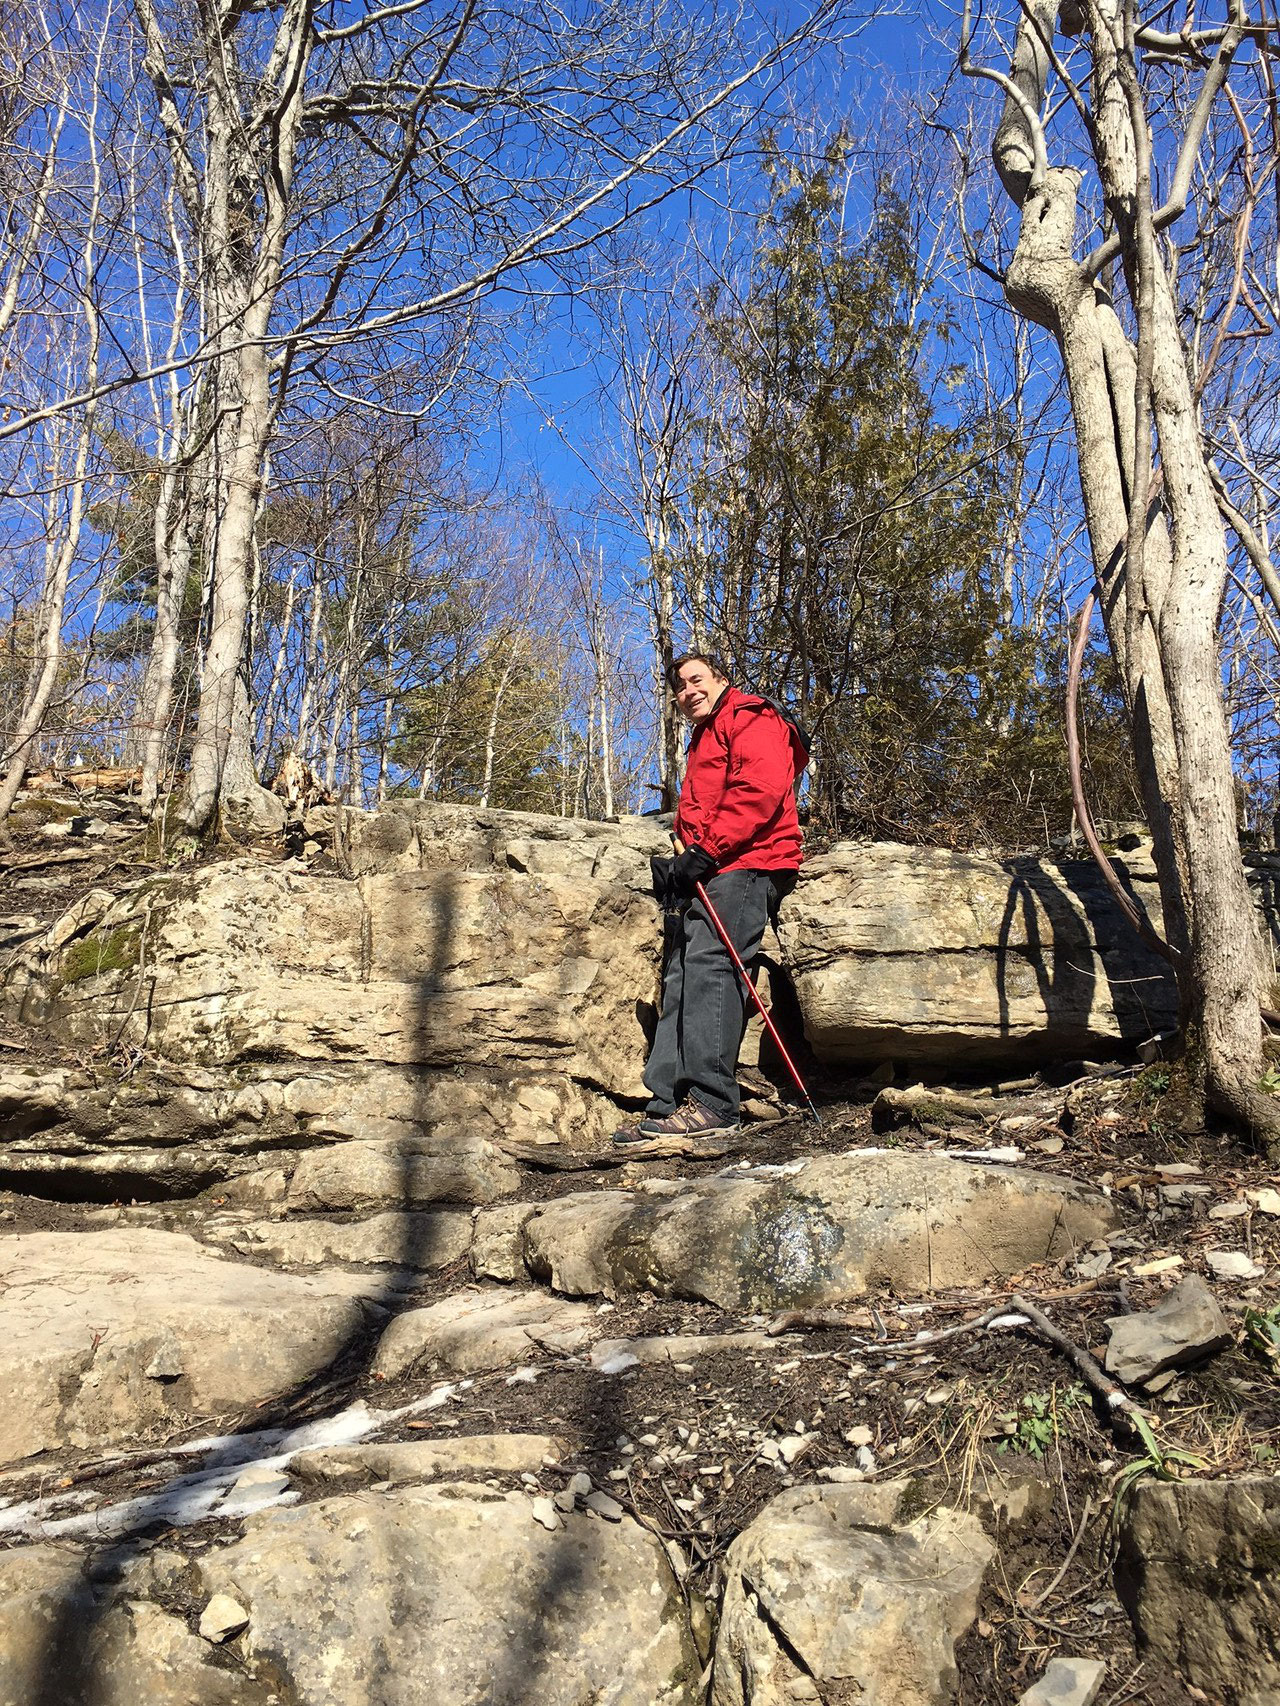 John hiking at Clark Reservation  Feb. 22, 2016